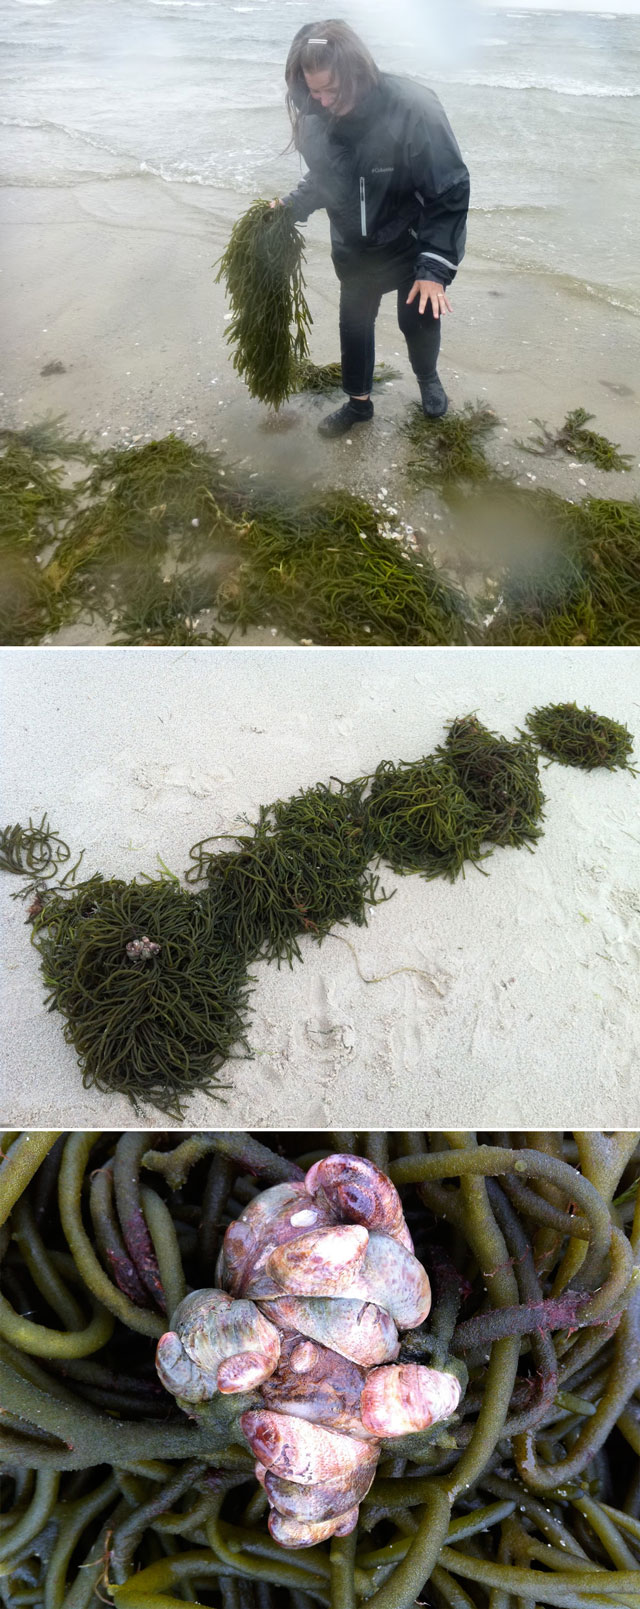 harvesting plant fiber seaweed invasive for hand papermaking